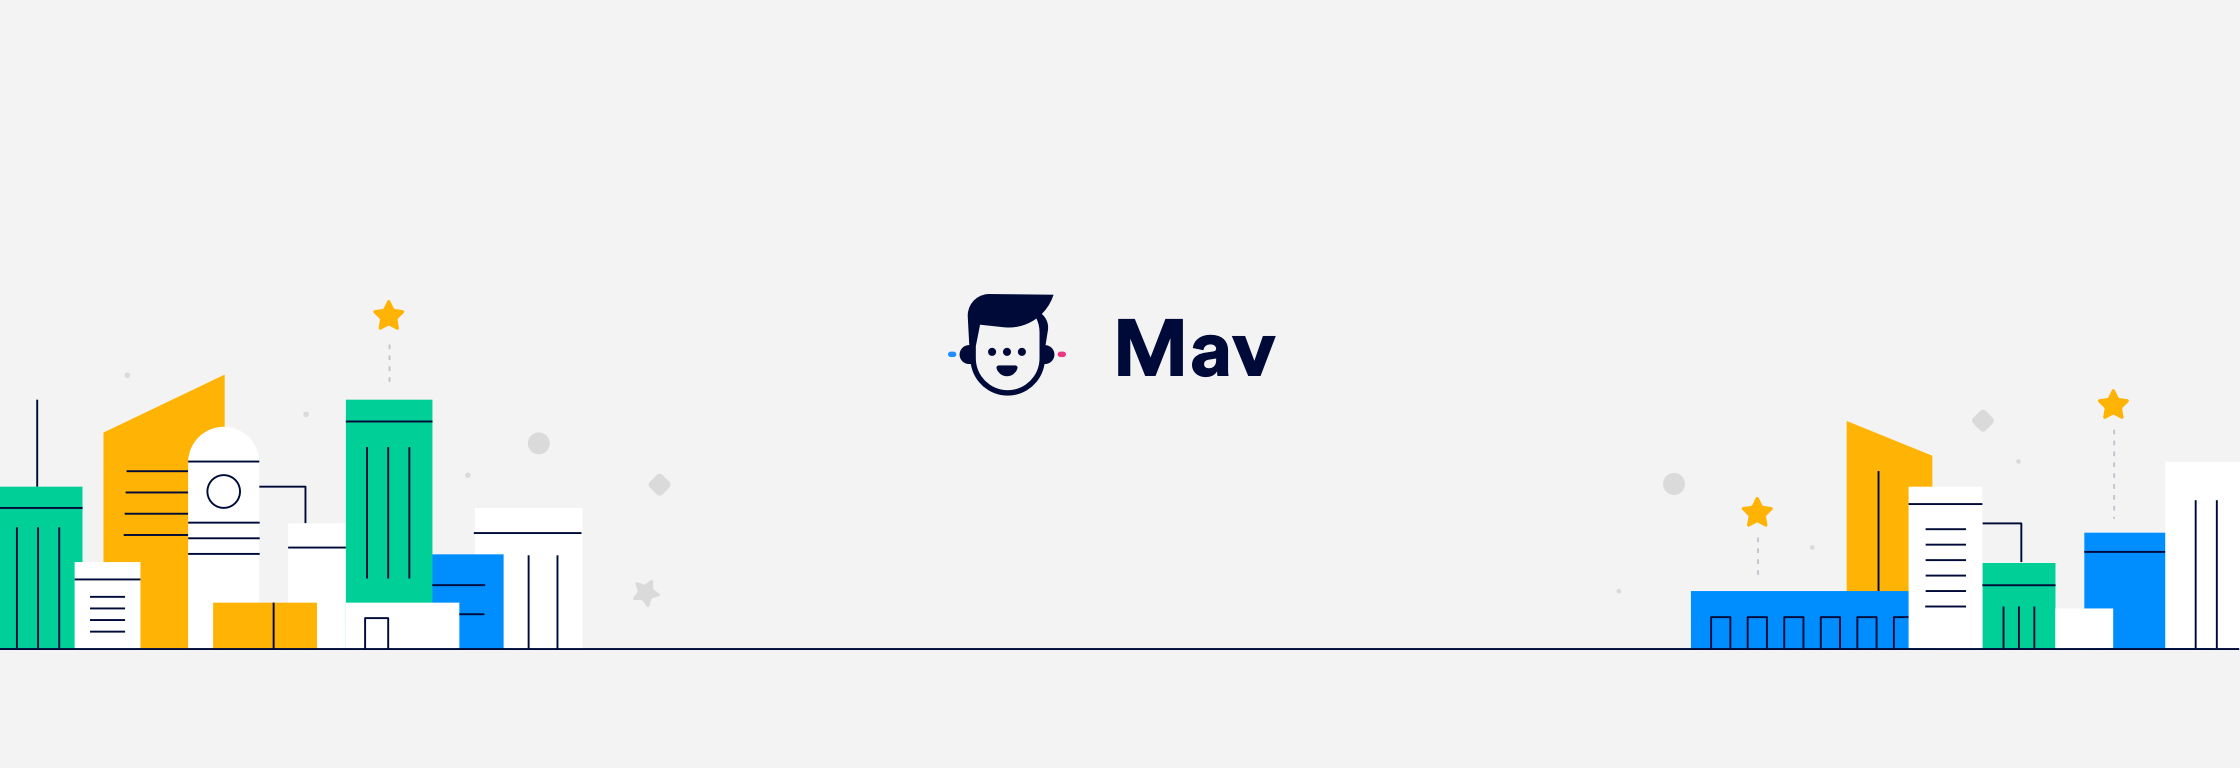 Mav-FB-Mortgage-@2x